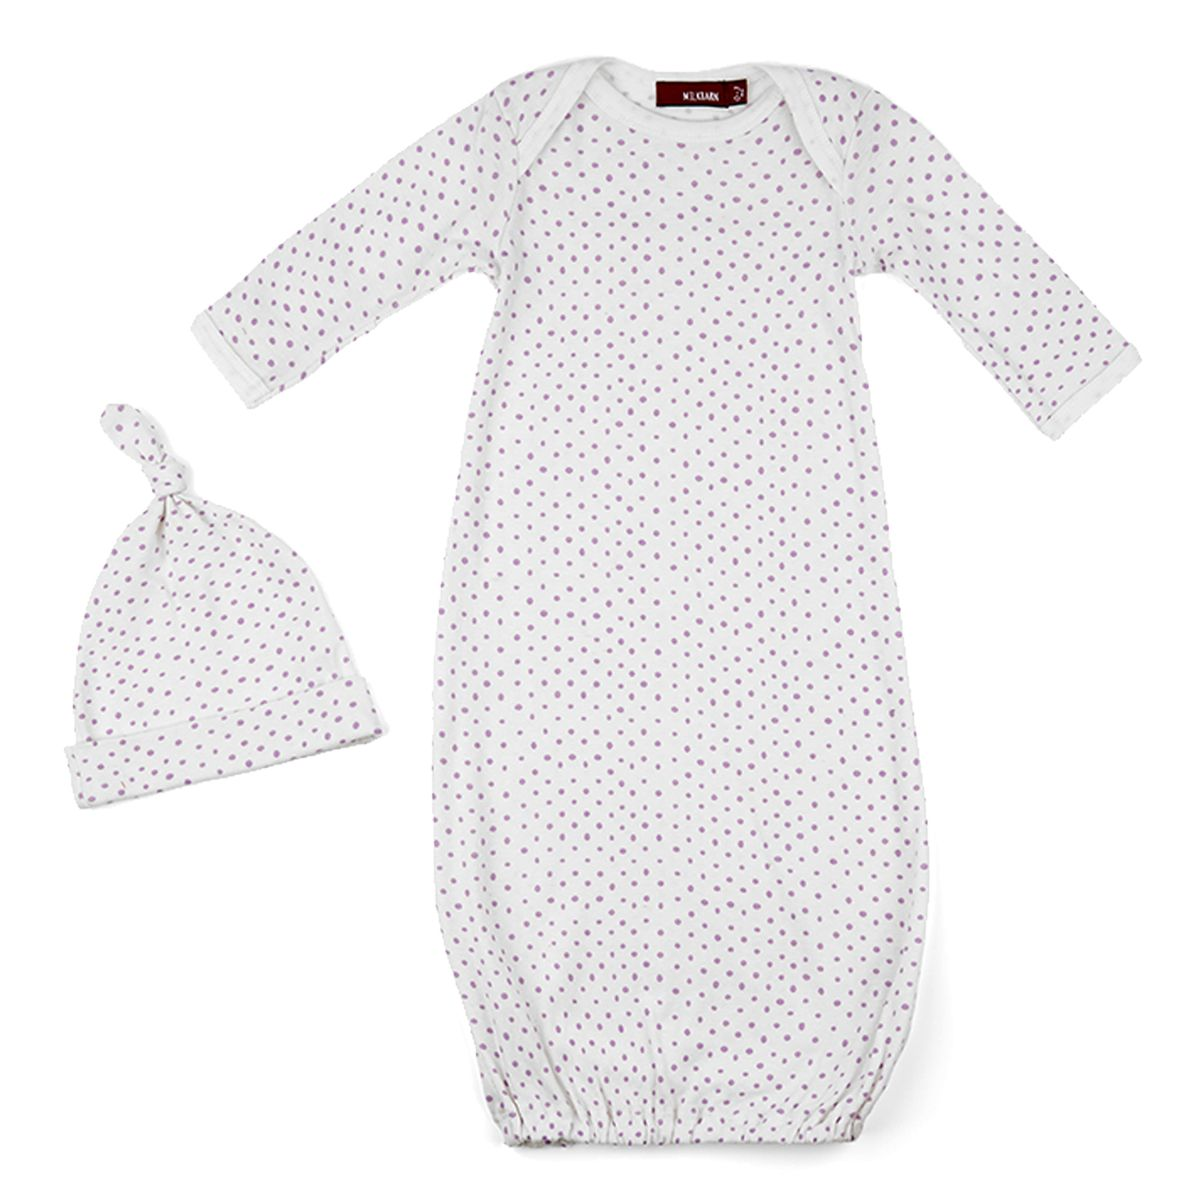 Coming home is easy in this adorable gown and hat set from MilkBarn ...